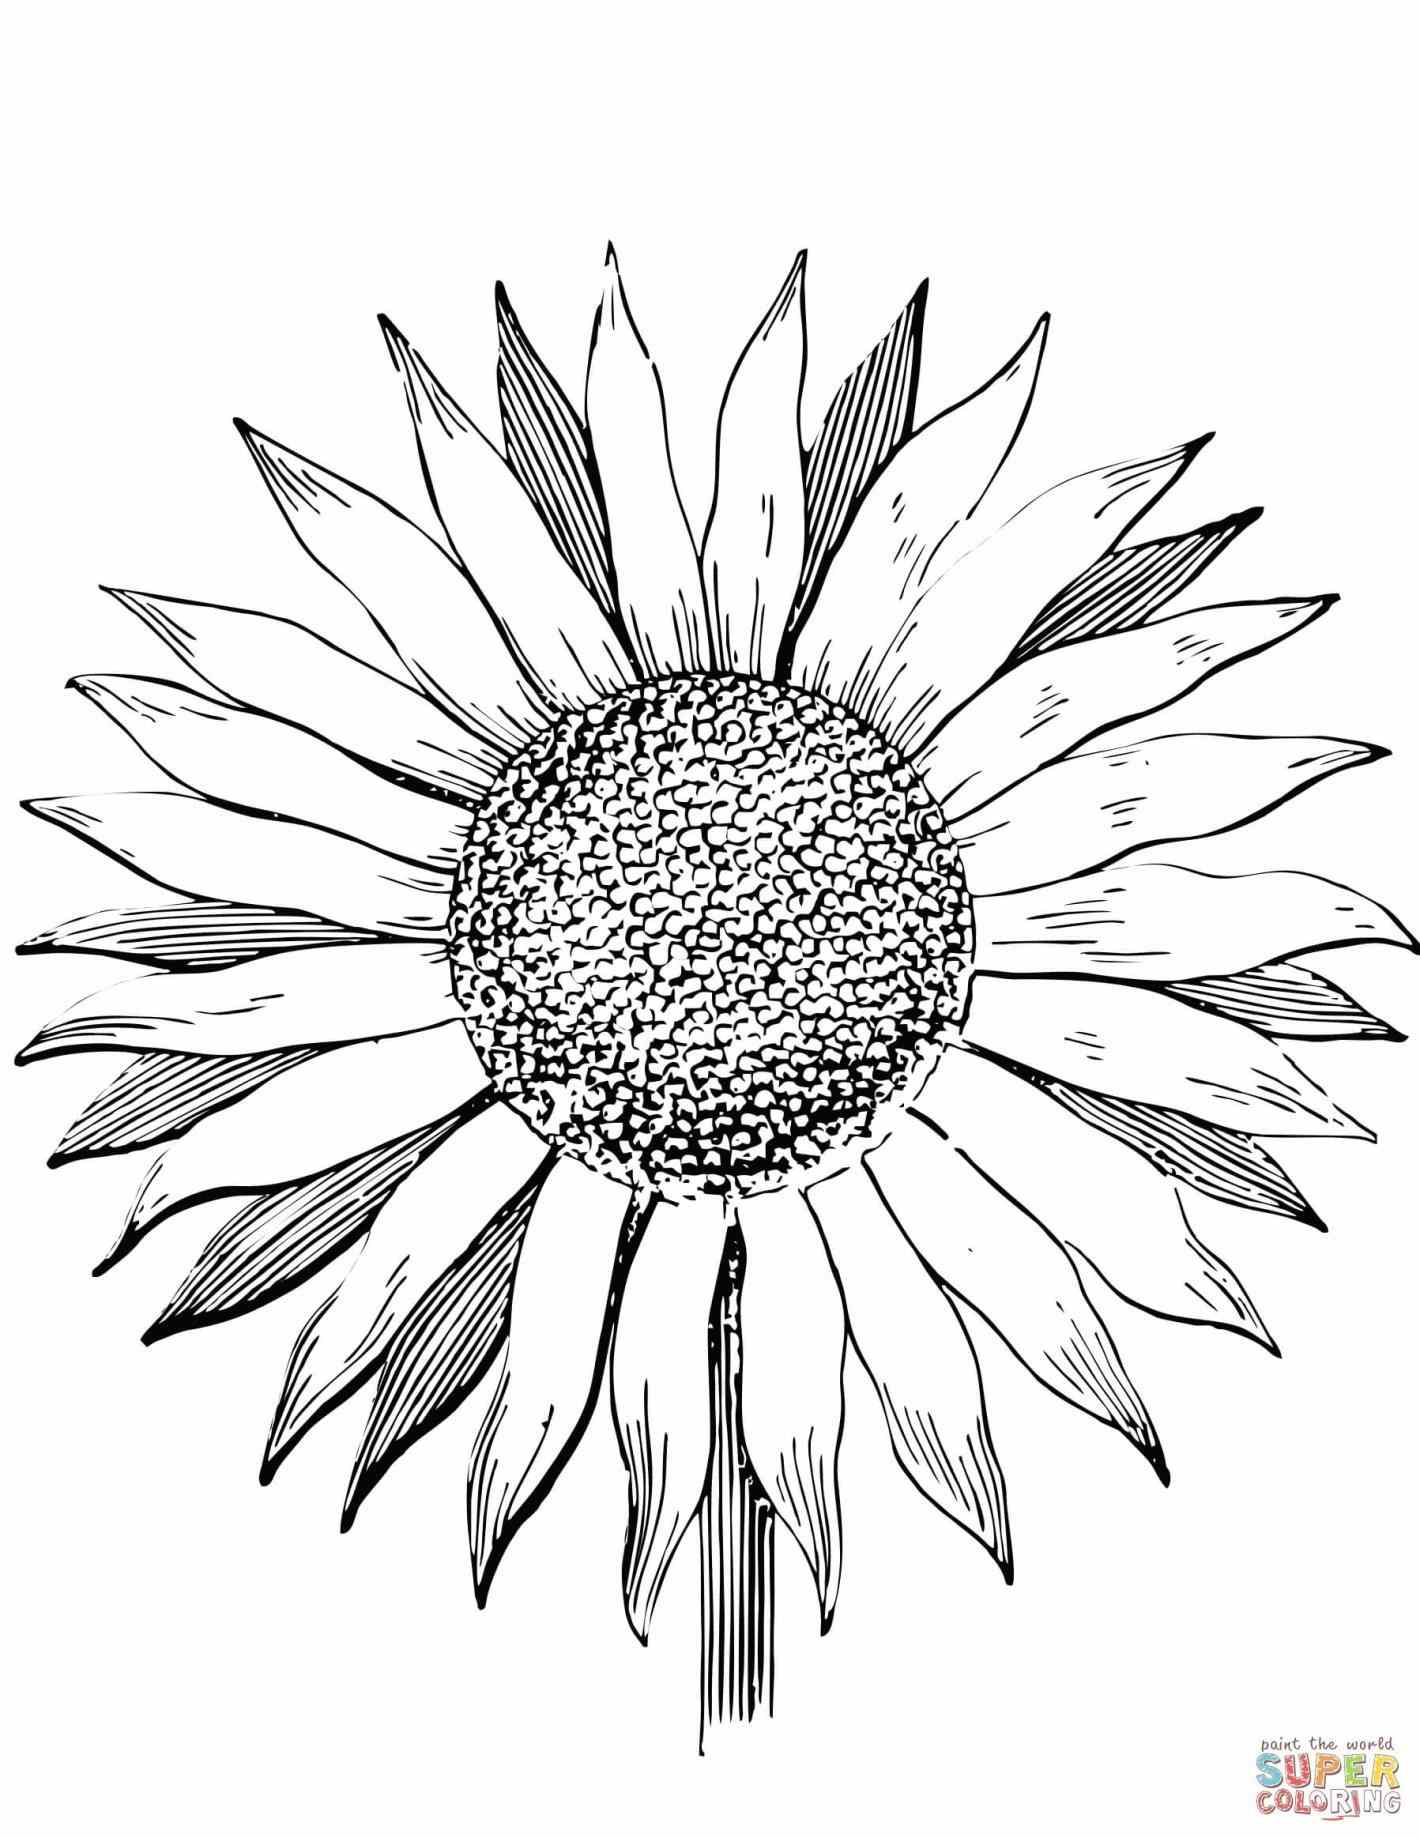 drawing of a sunflower line drawing sunflower photograph by tina m wenger a sunflower of drawing